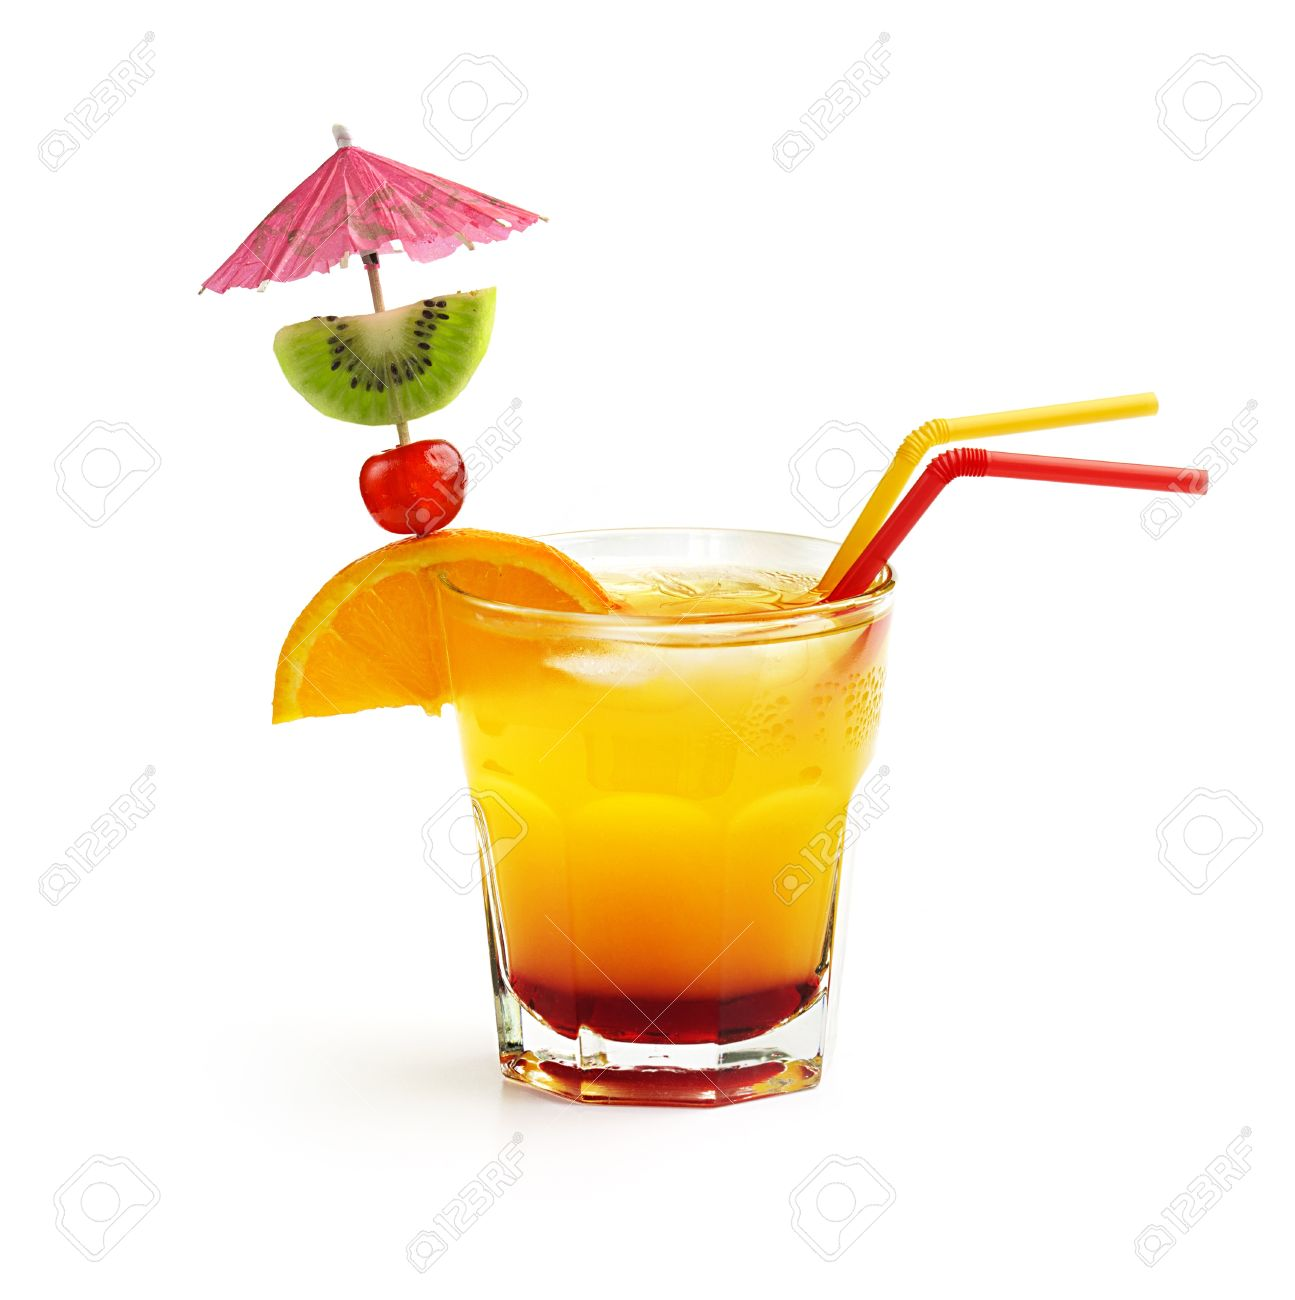 Cocktail With Fruit Decoration And Straws Isolated On White